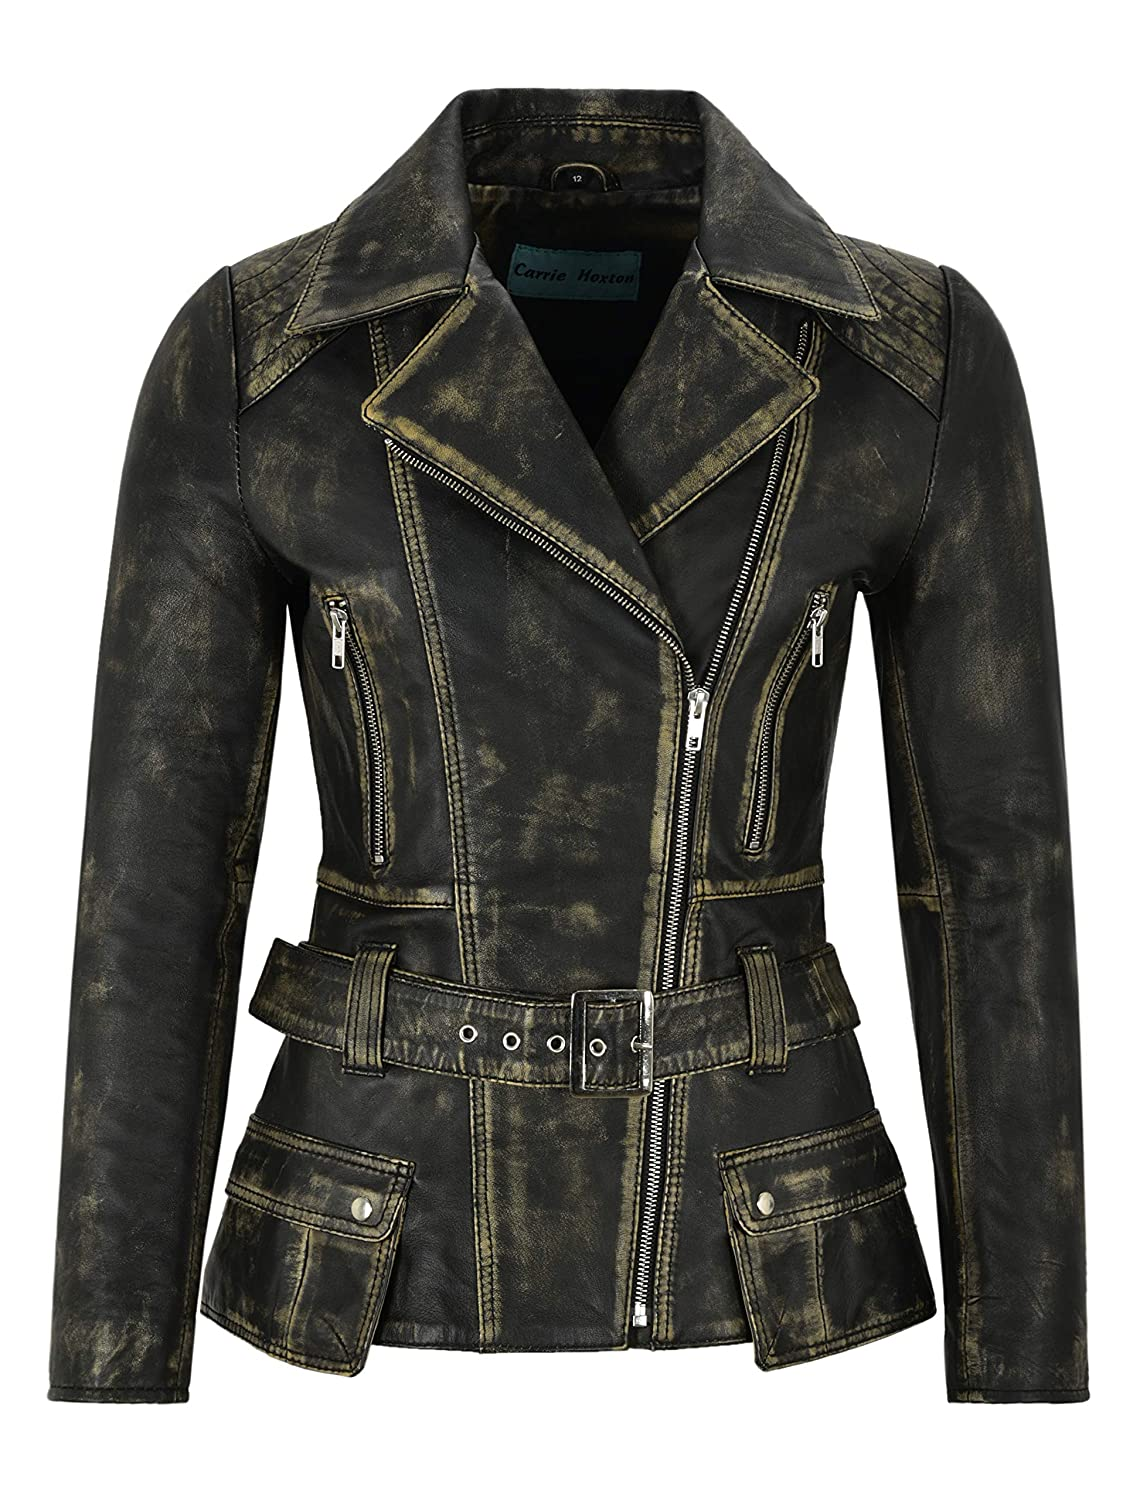 cc5d9a0e2 Carrie CH Hoxton Trench Ladies Fashion Leather Jacket Black Rust ...